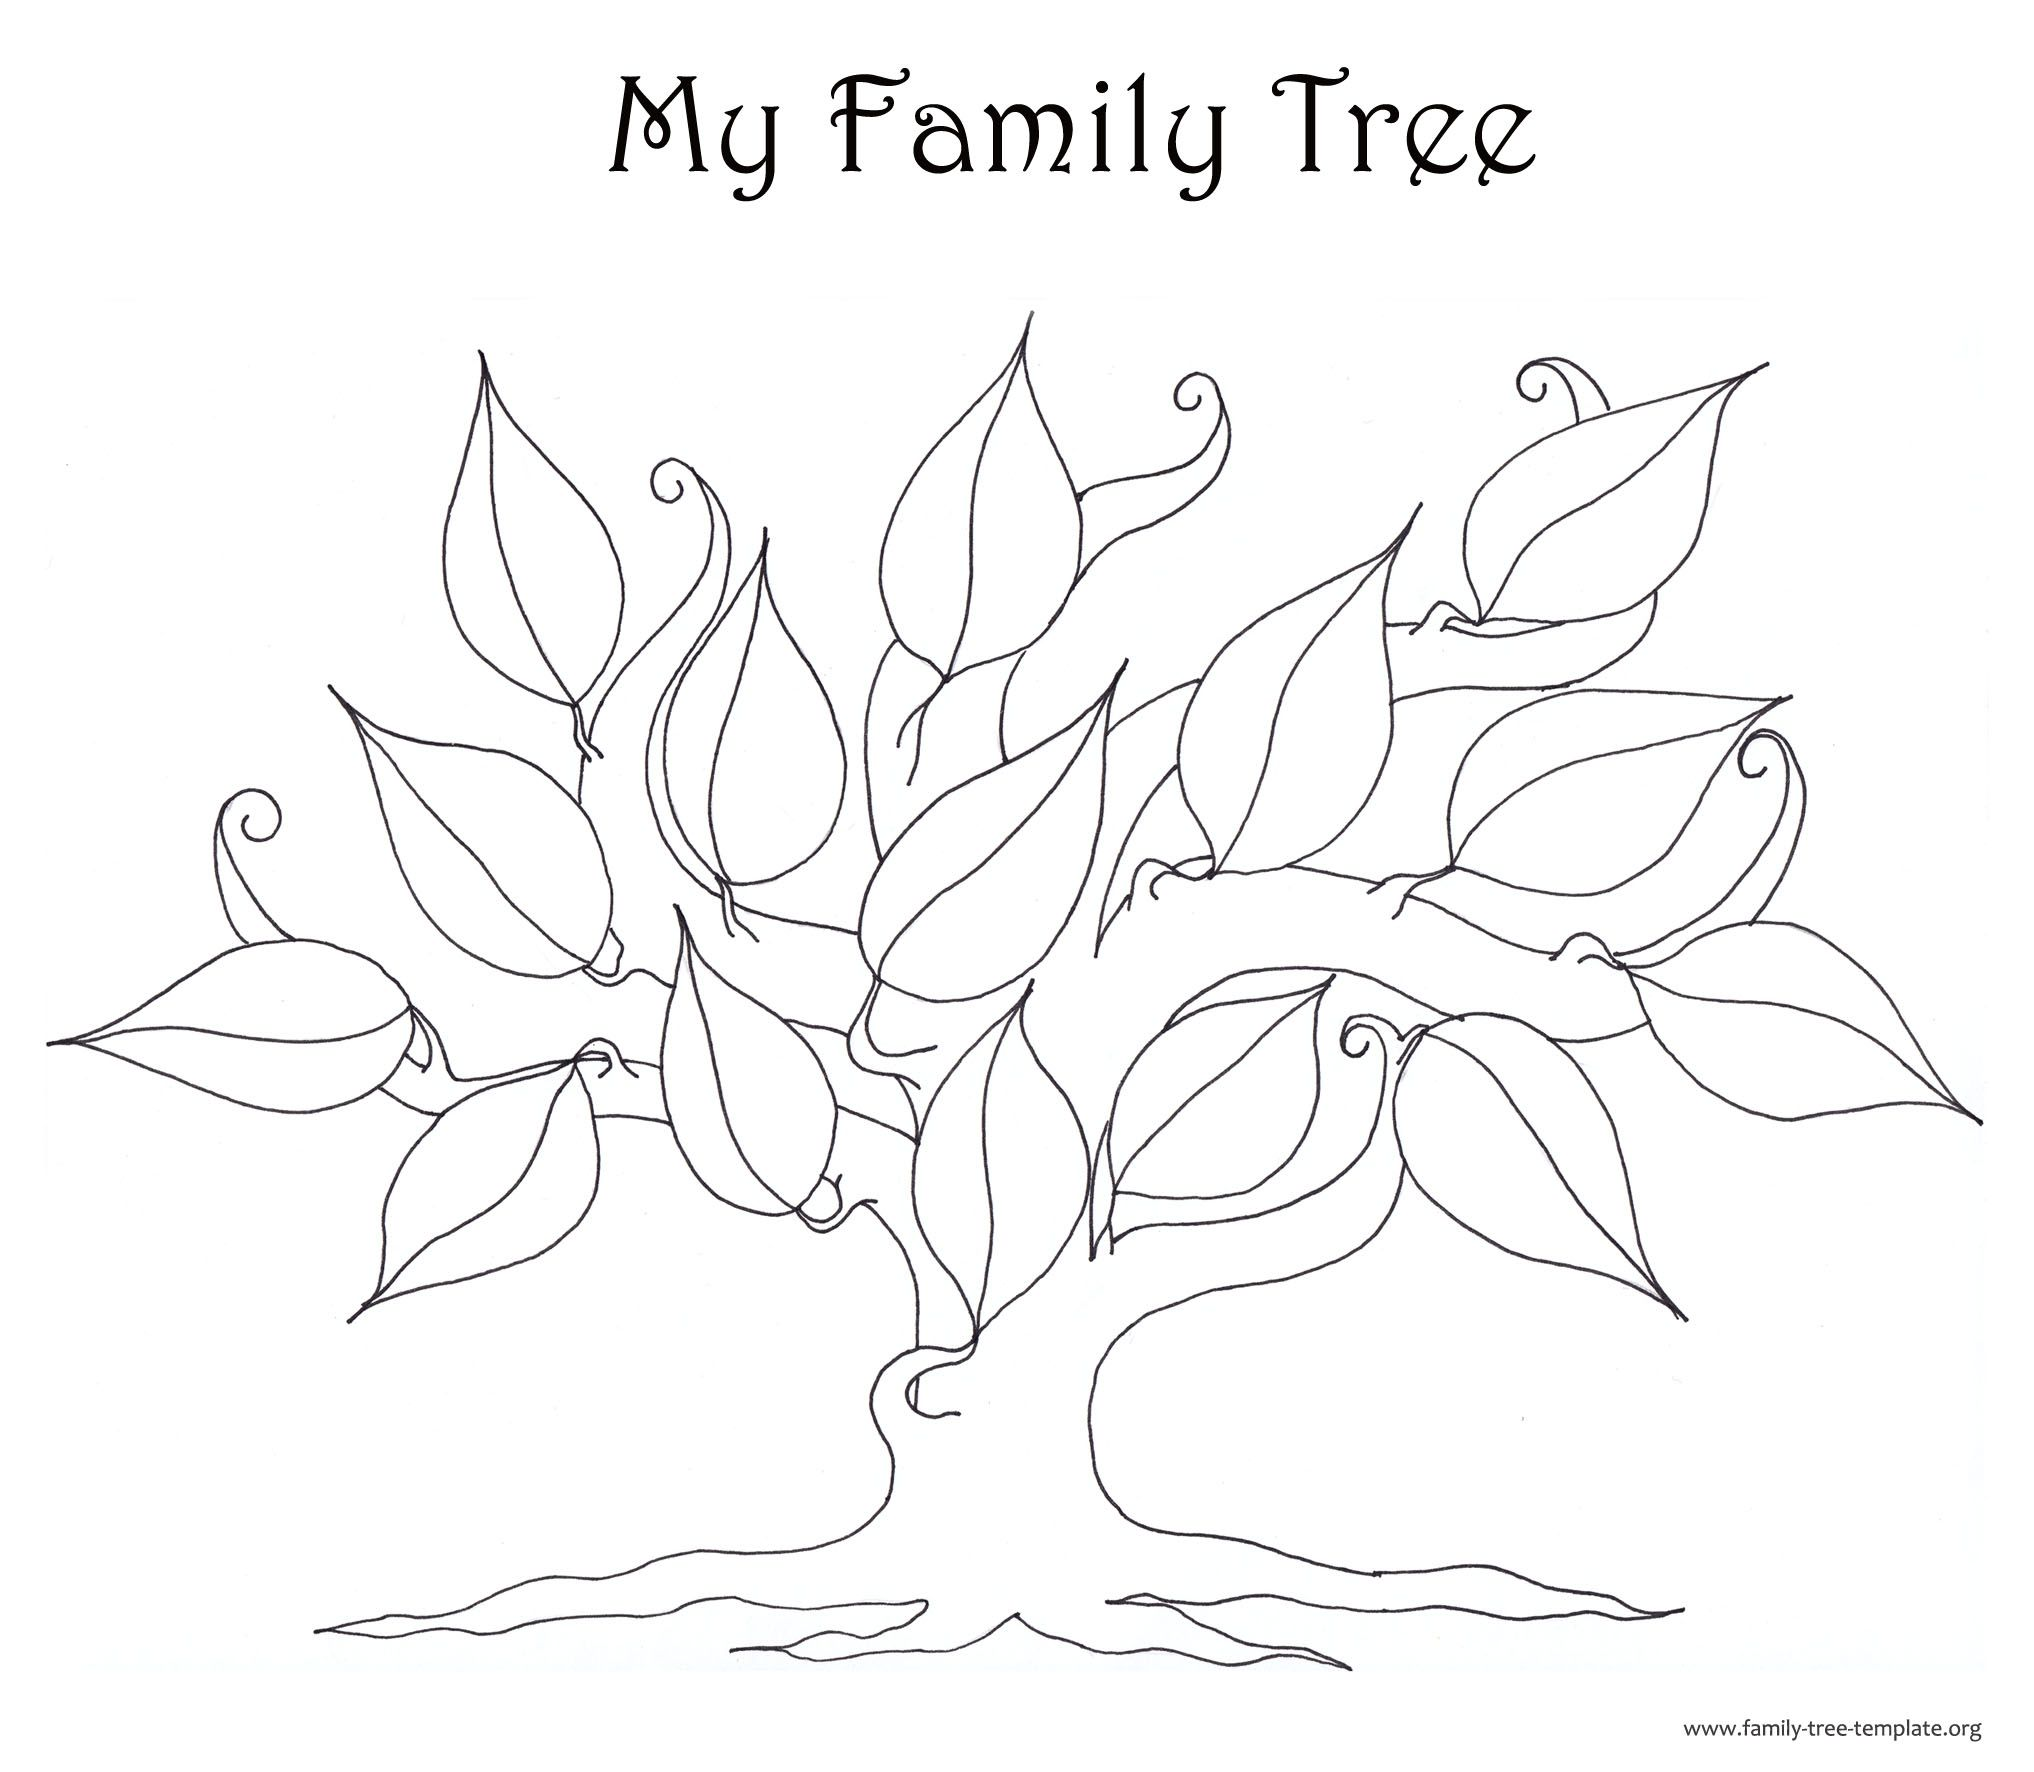 tree without leaves silhouette Google Search Family